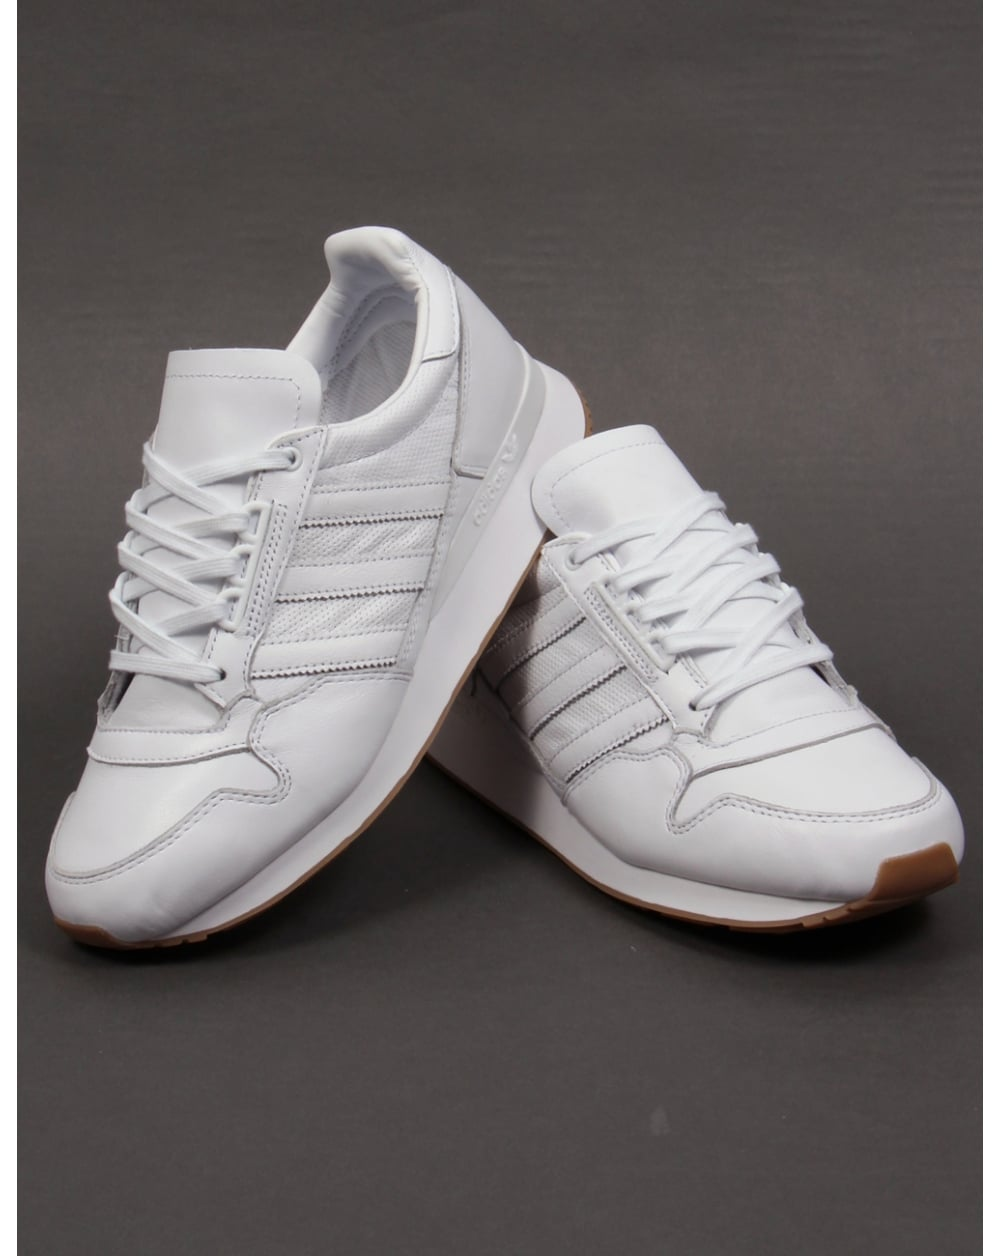 brand new 218b7 d046b Adidas ZX 500 OG Leather Trainers White/white